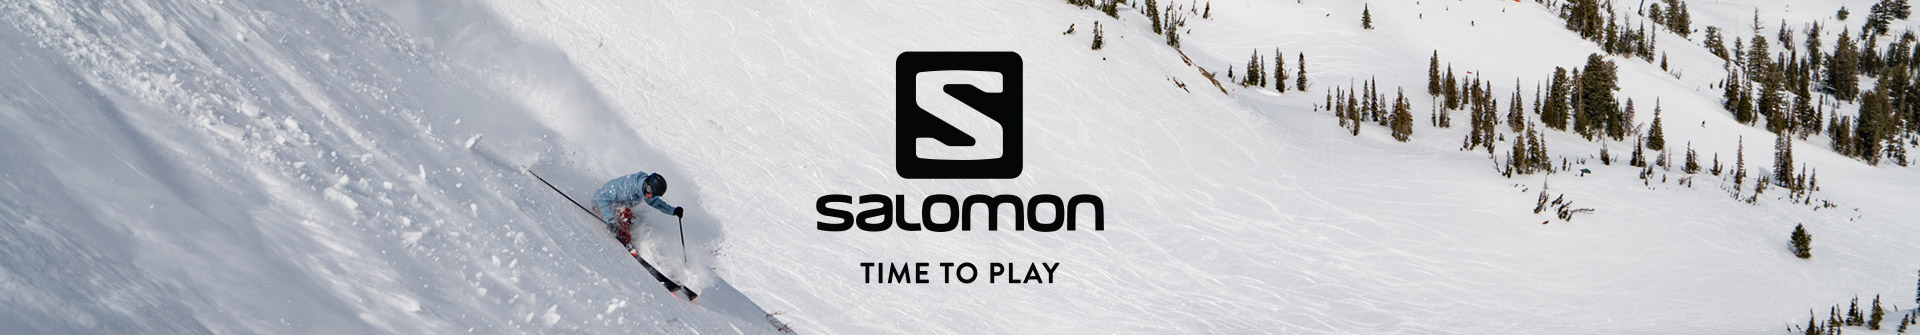 Shop Salomon Skis & Equipment at your local Source For Sports ski & snowboard store